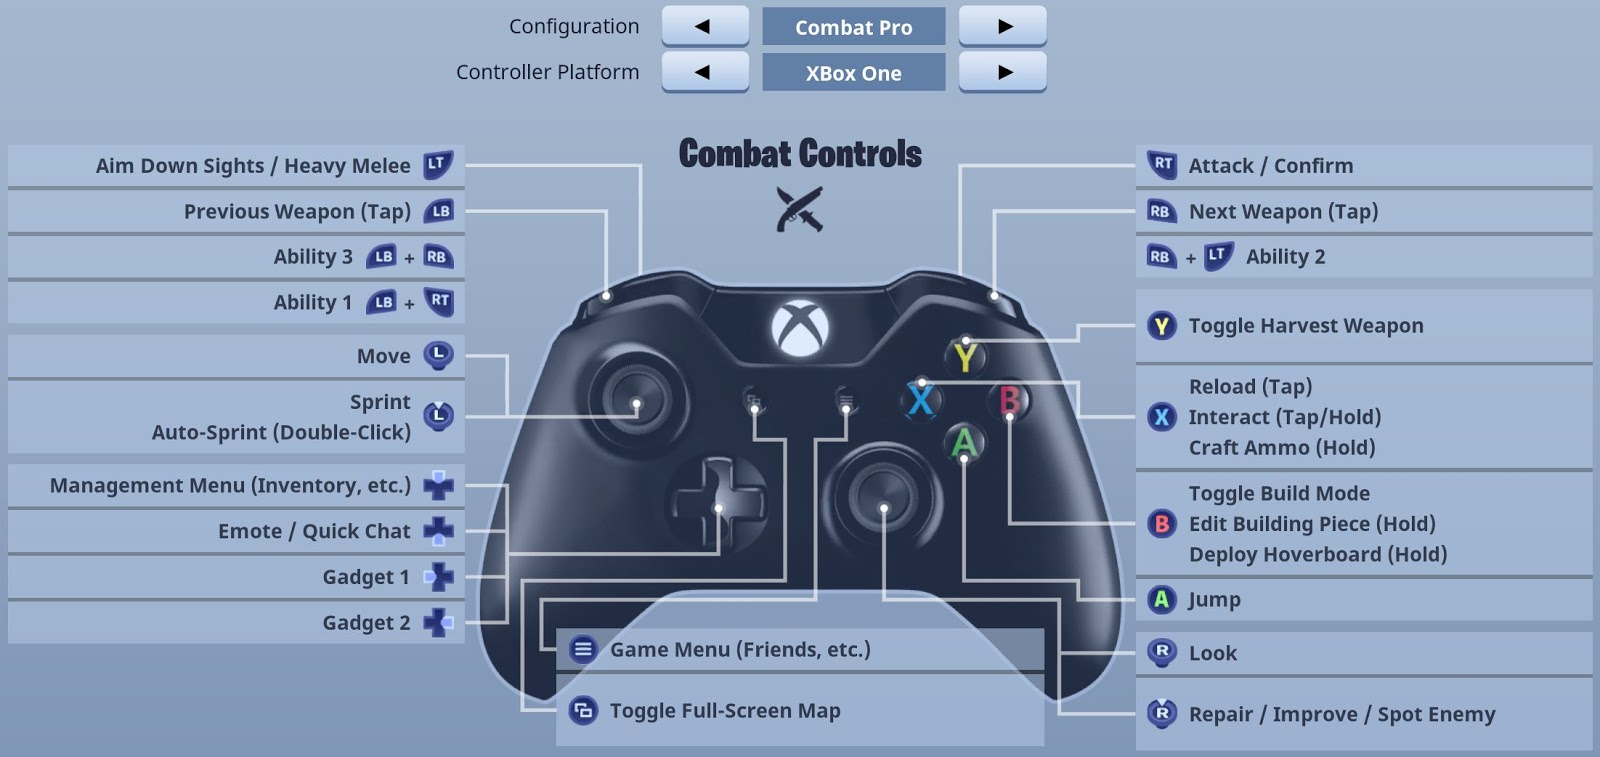 Xbox One Combat Pro Combat Controls for Fortnite